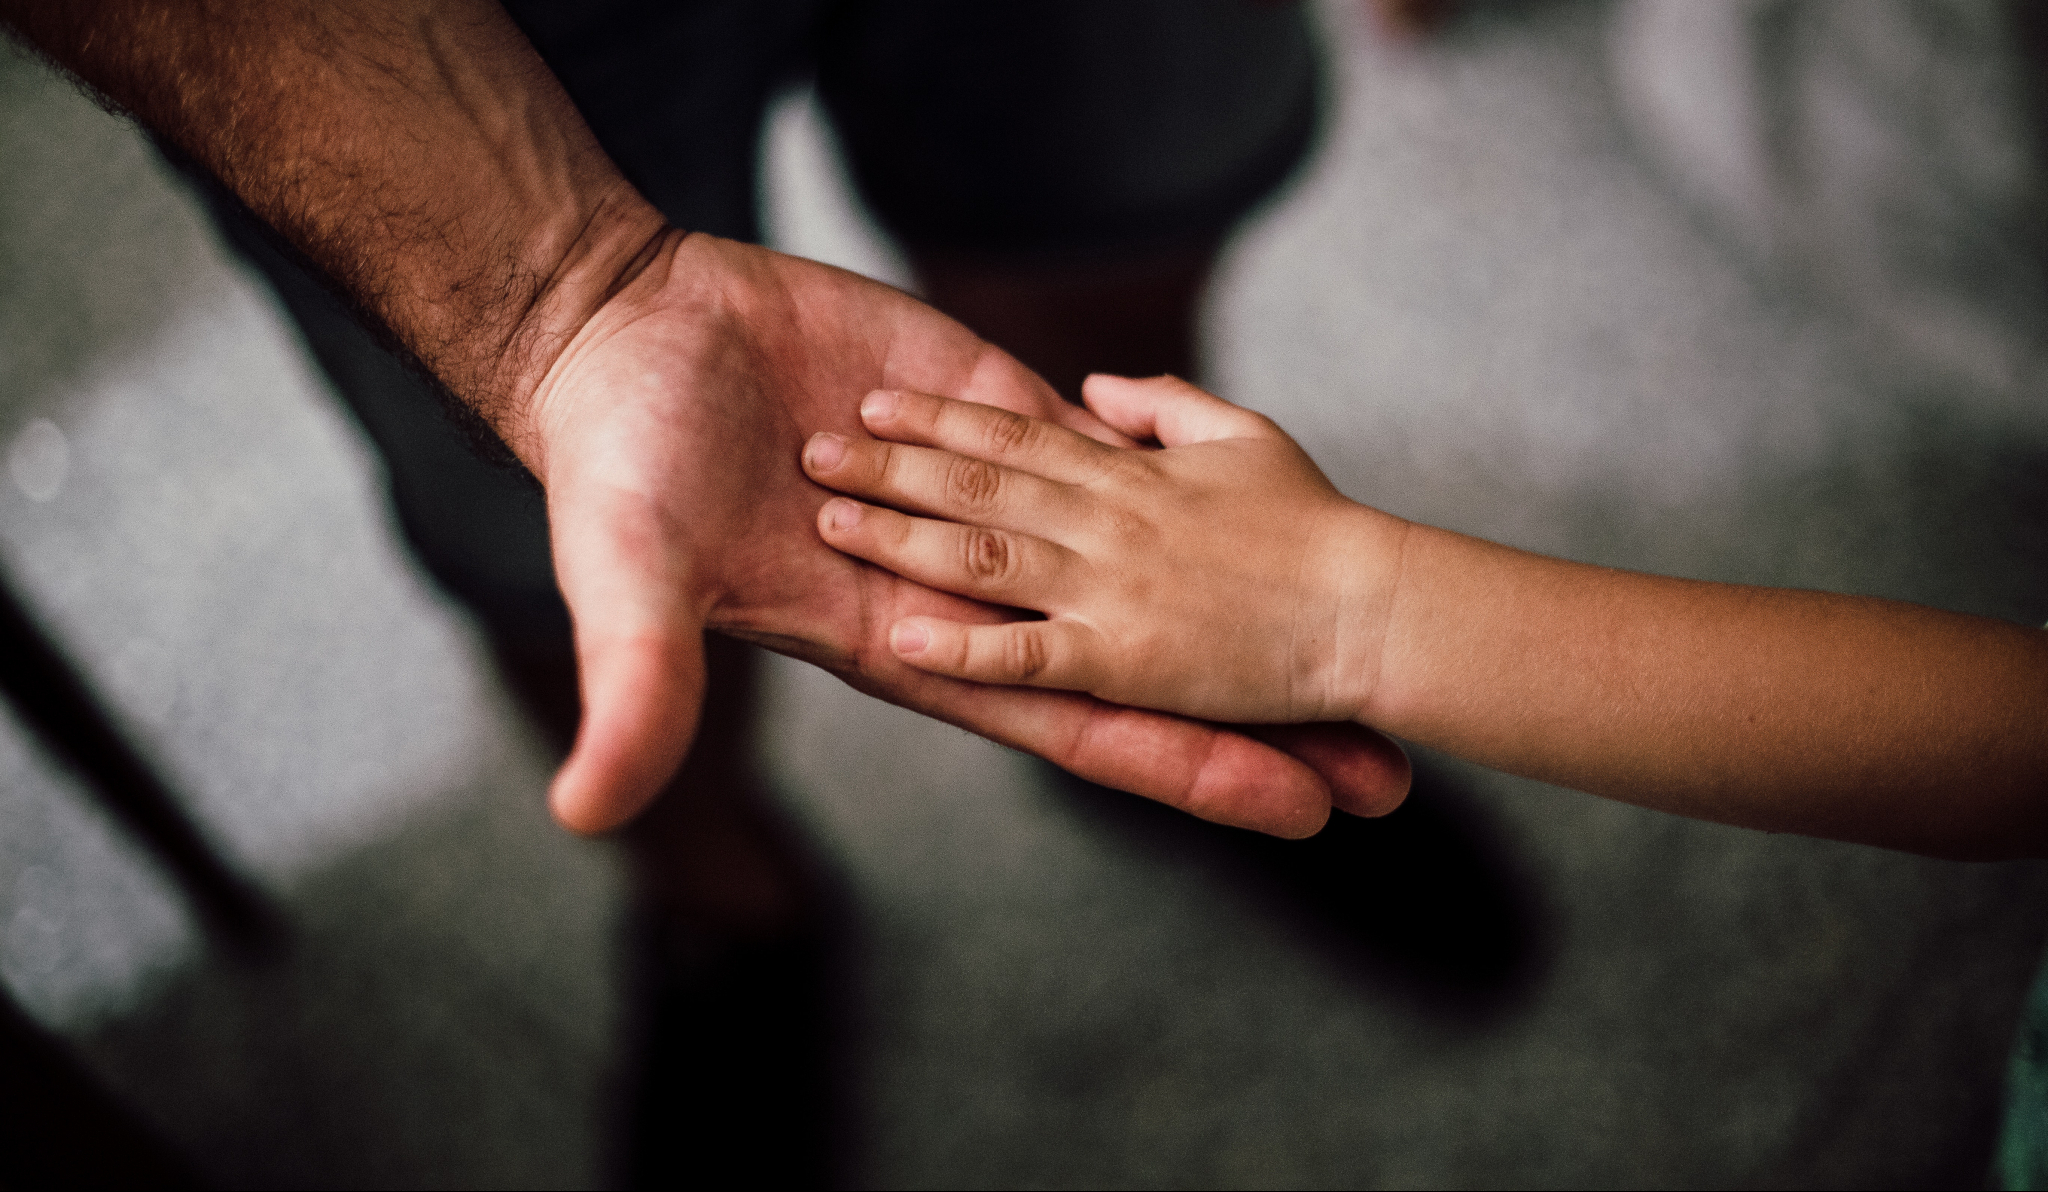 Father holding son's hand